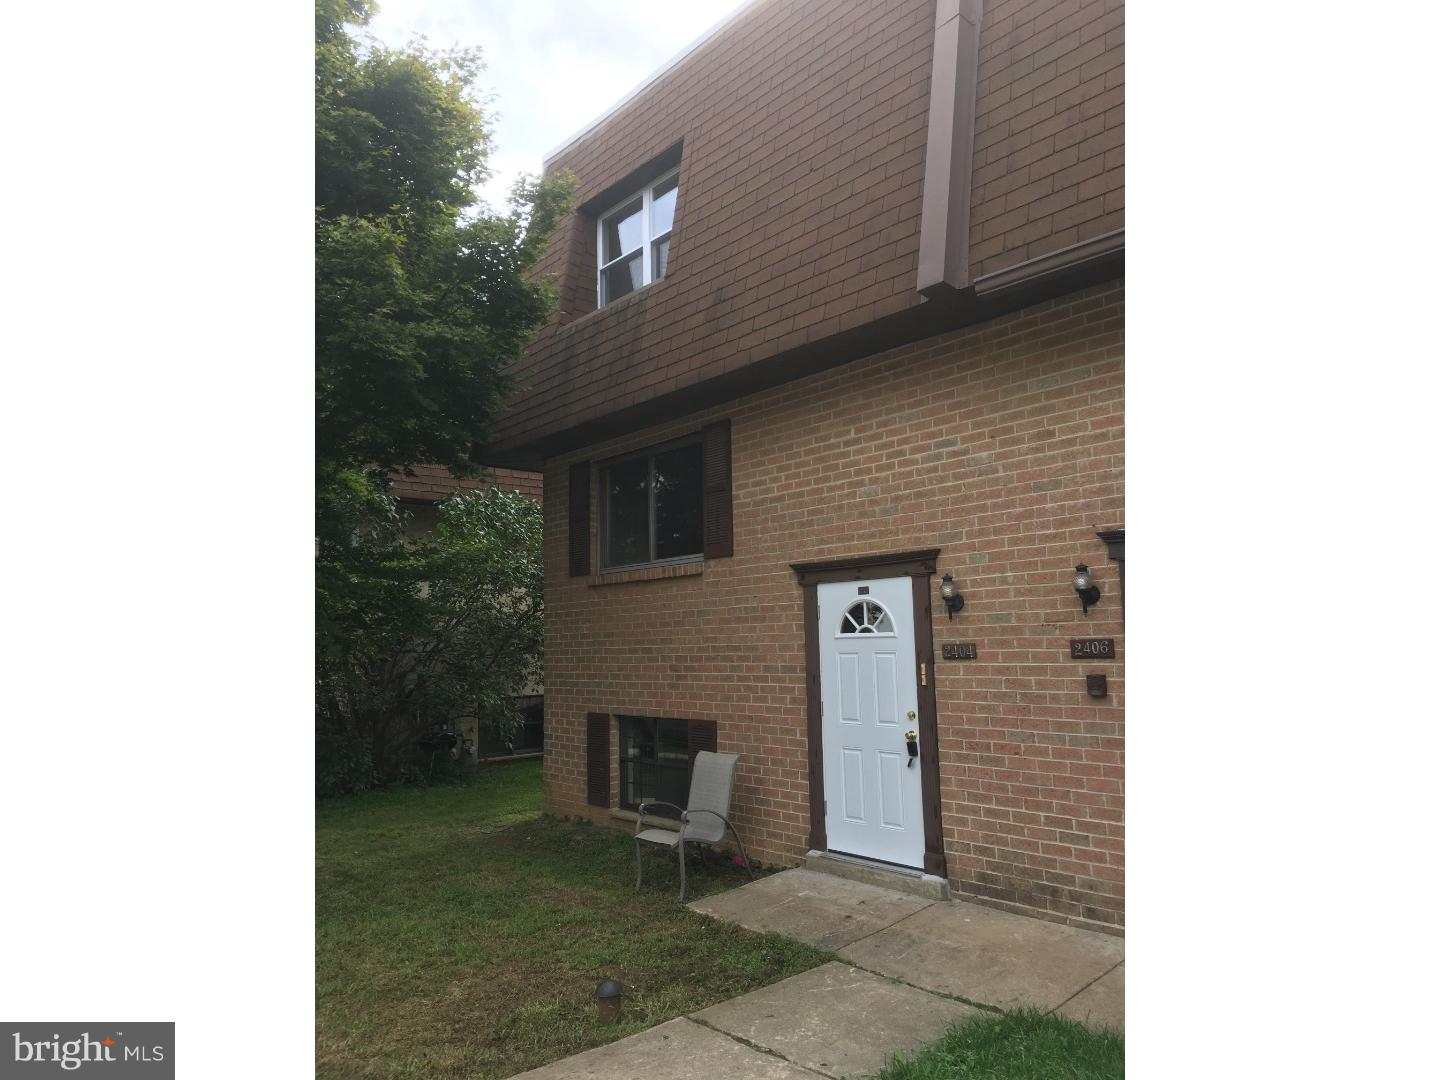 2404 David Drive Havertown, PA 19083